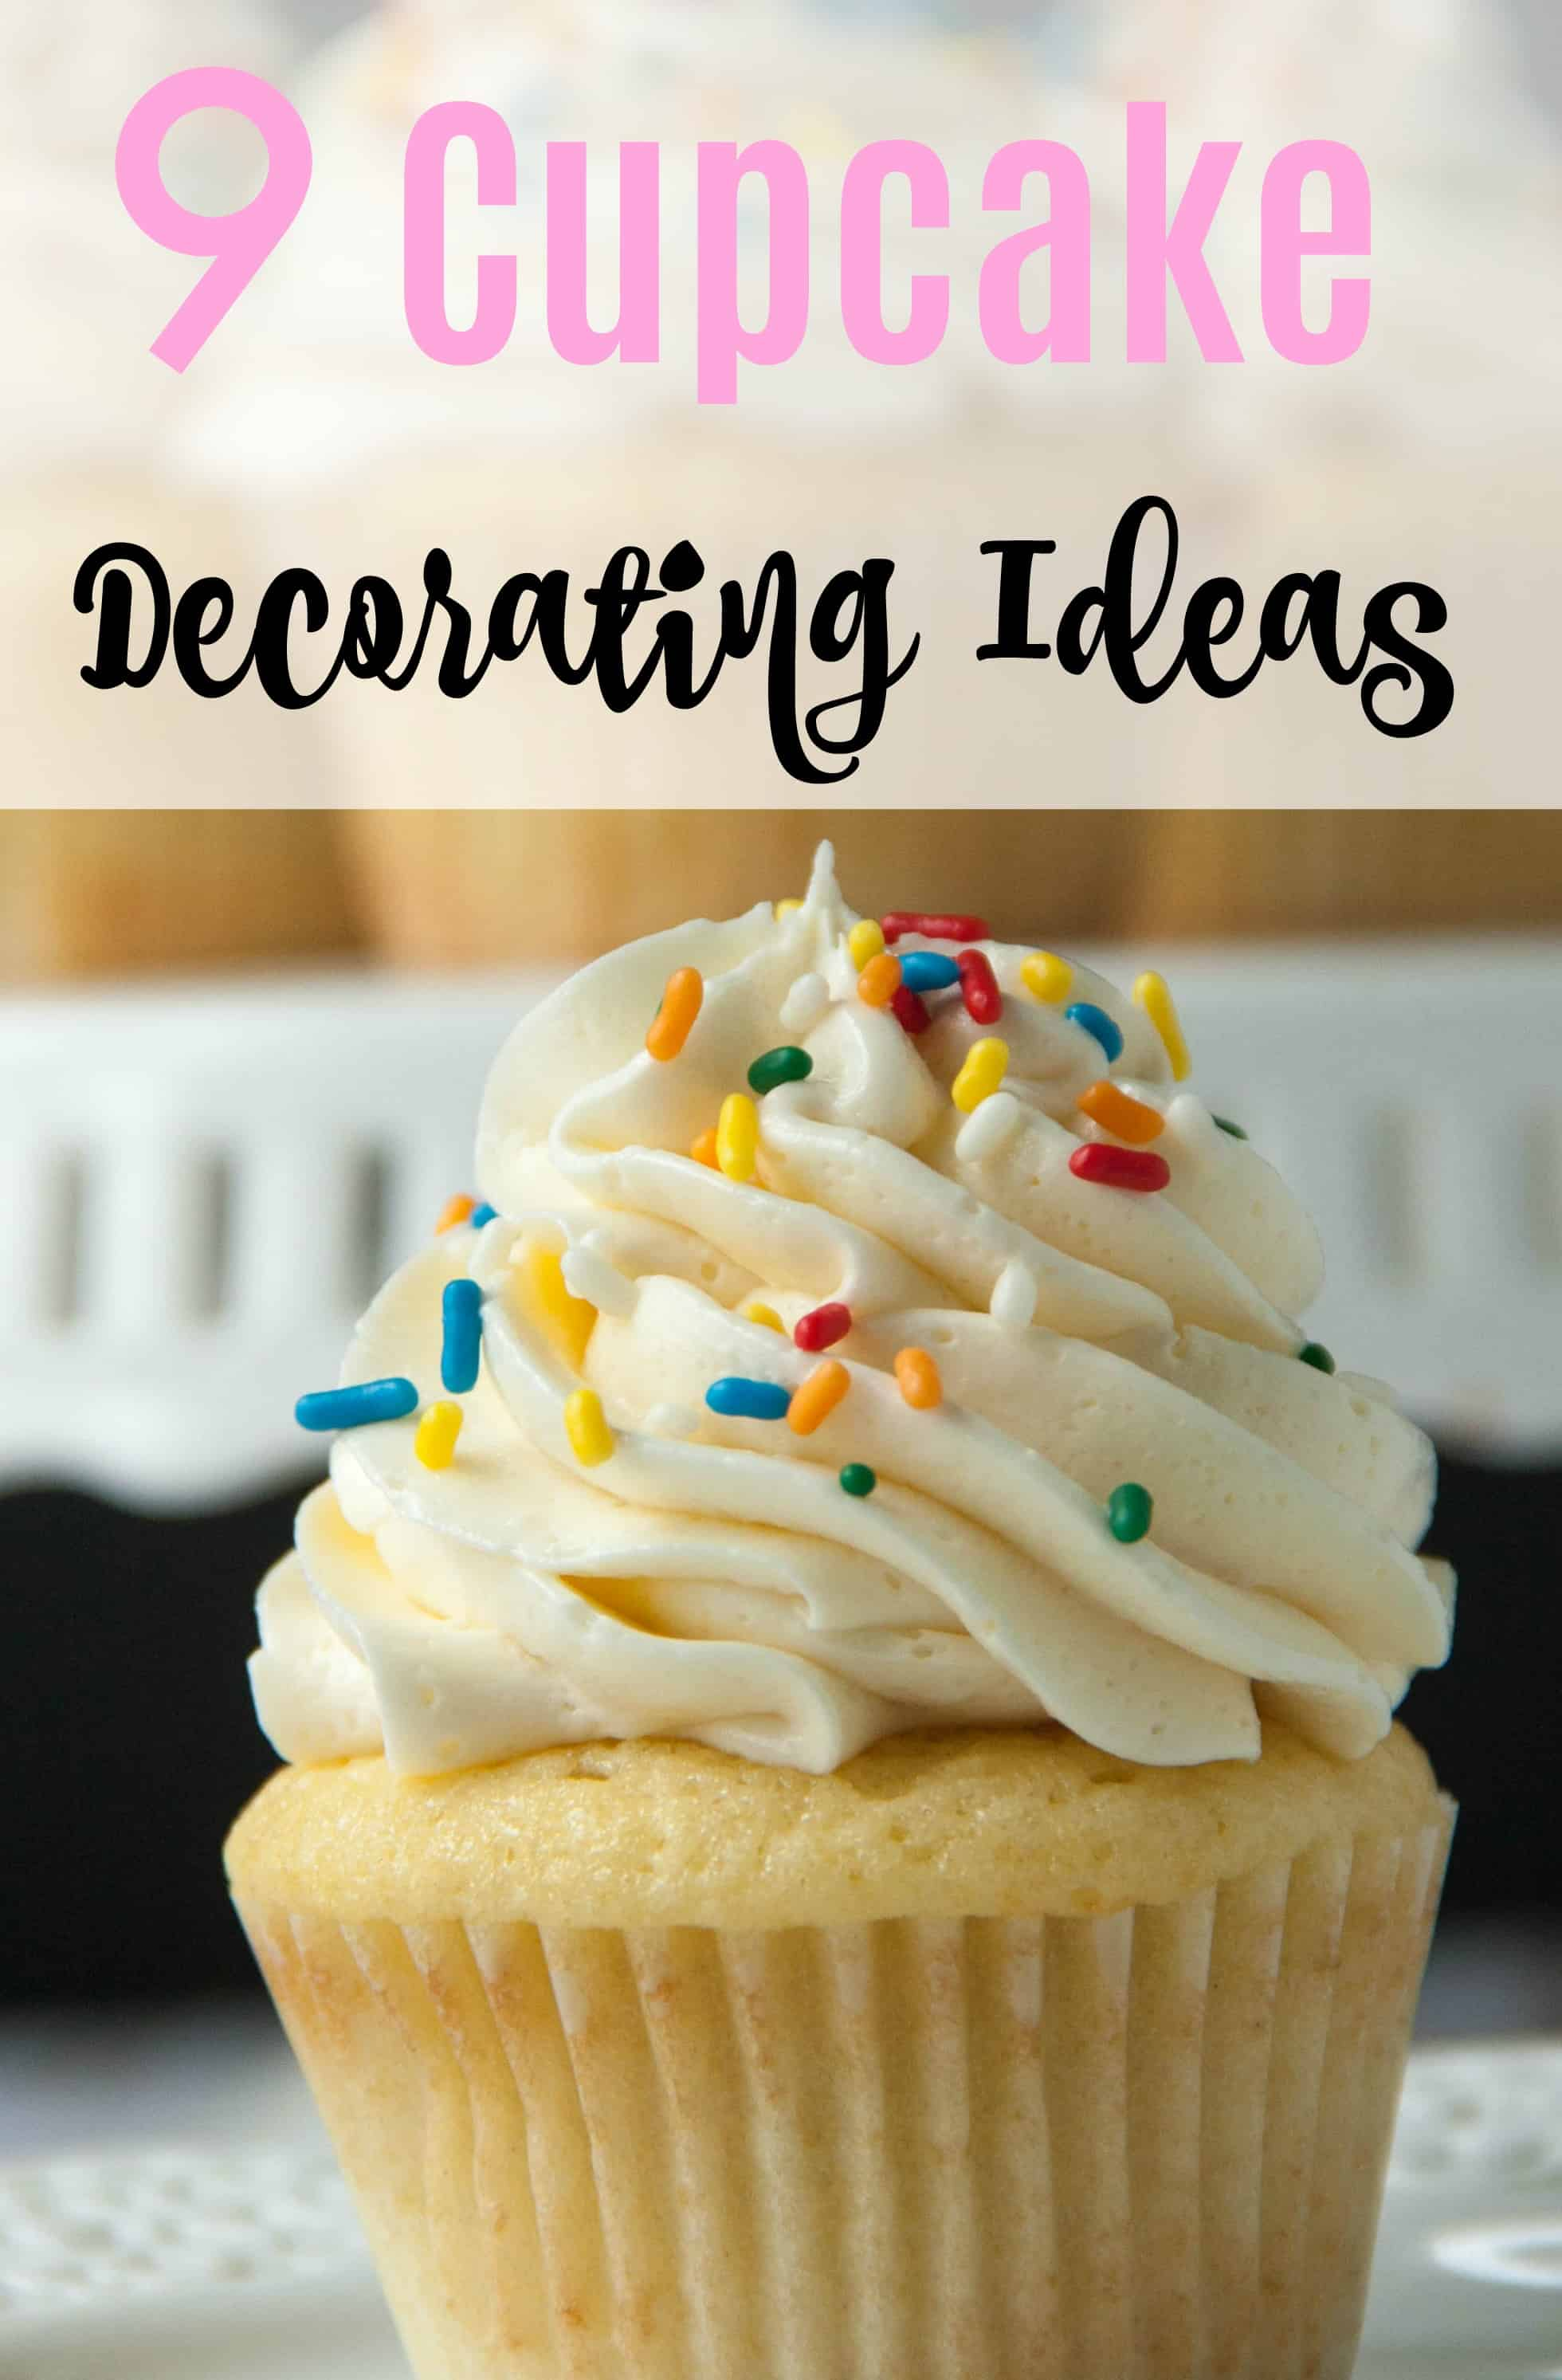 9 Easy Cupcake Decorating Ideas   Boston Girl Bakes 9 Easy Cupcake Decorating Ideas